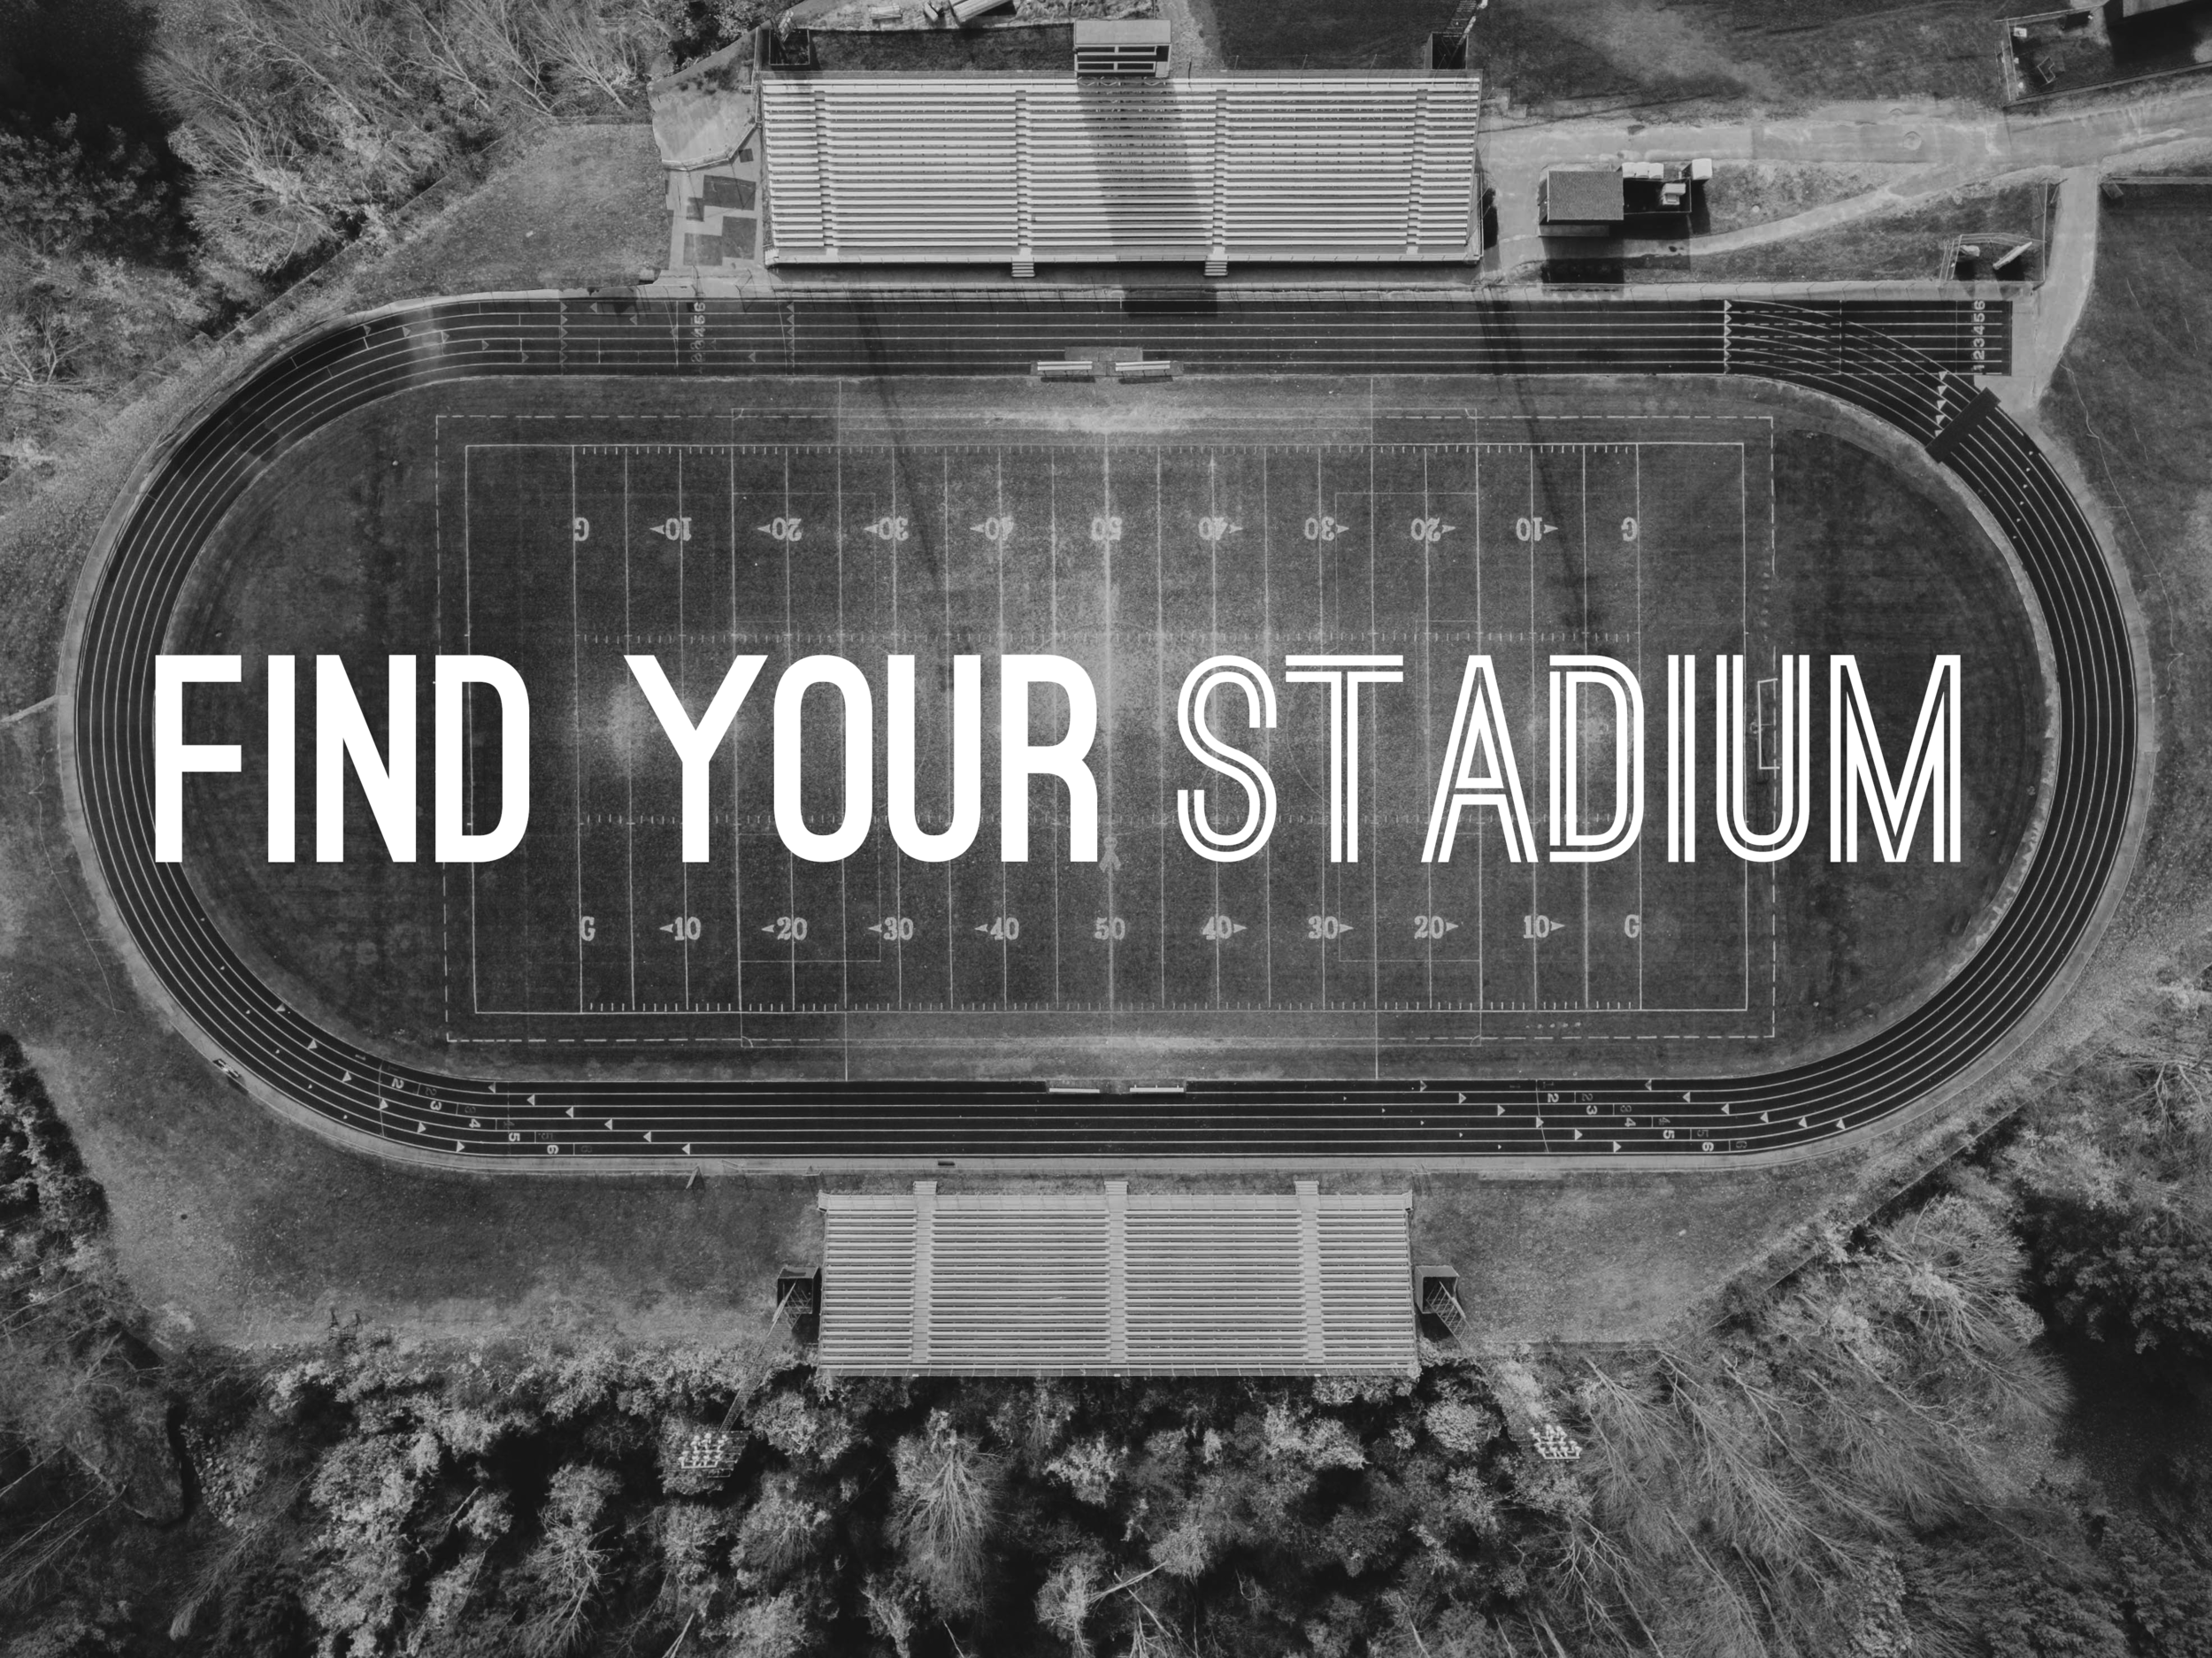 We represent a community of motivated individuals. The hustlers, the creators, the game changers, and all active lifestyles. Whatever your stadium may be, whether it's the gym, the studio or the streets we want to be a part of it. -